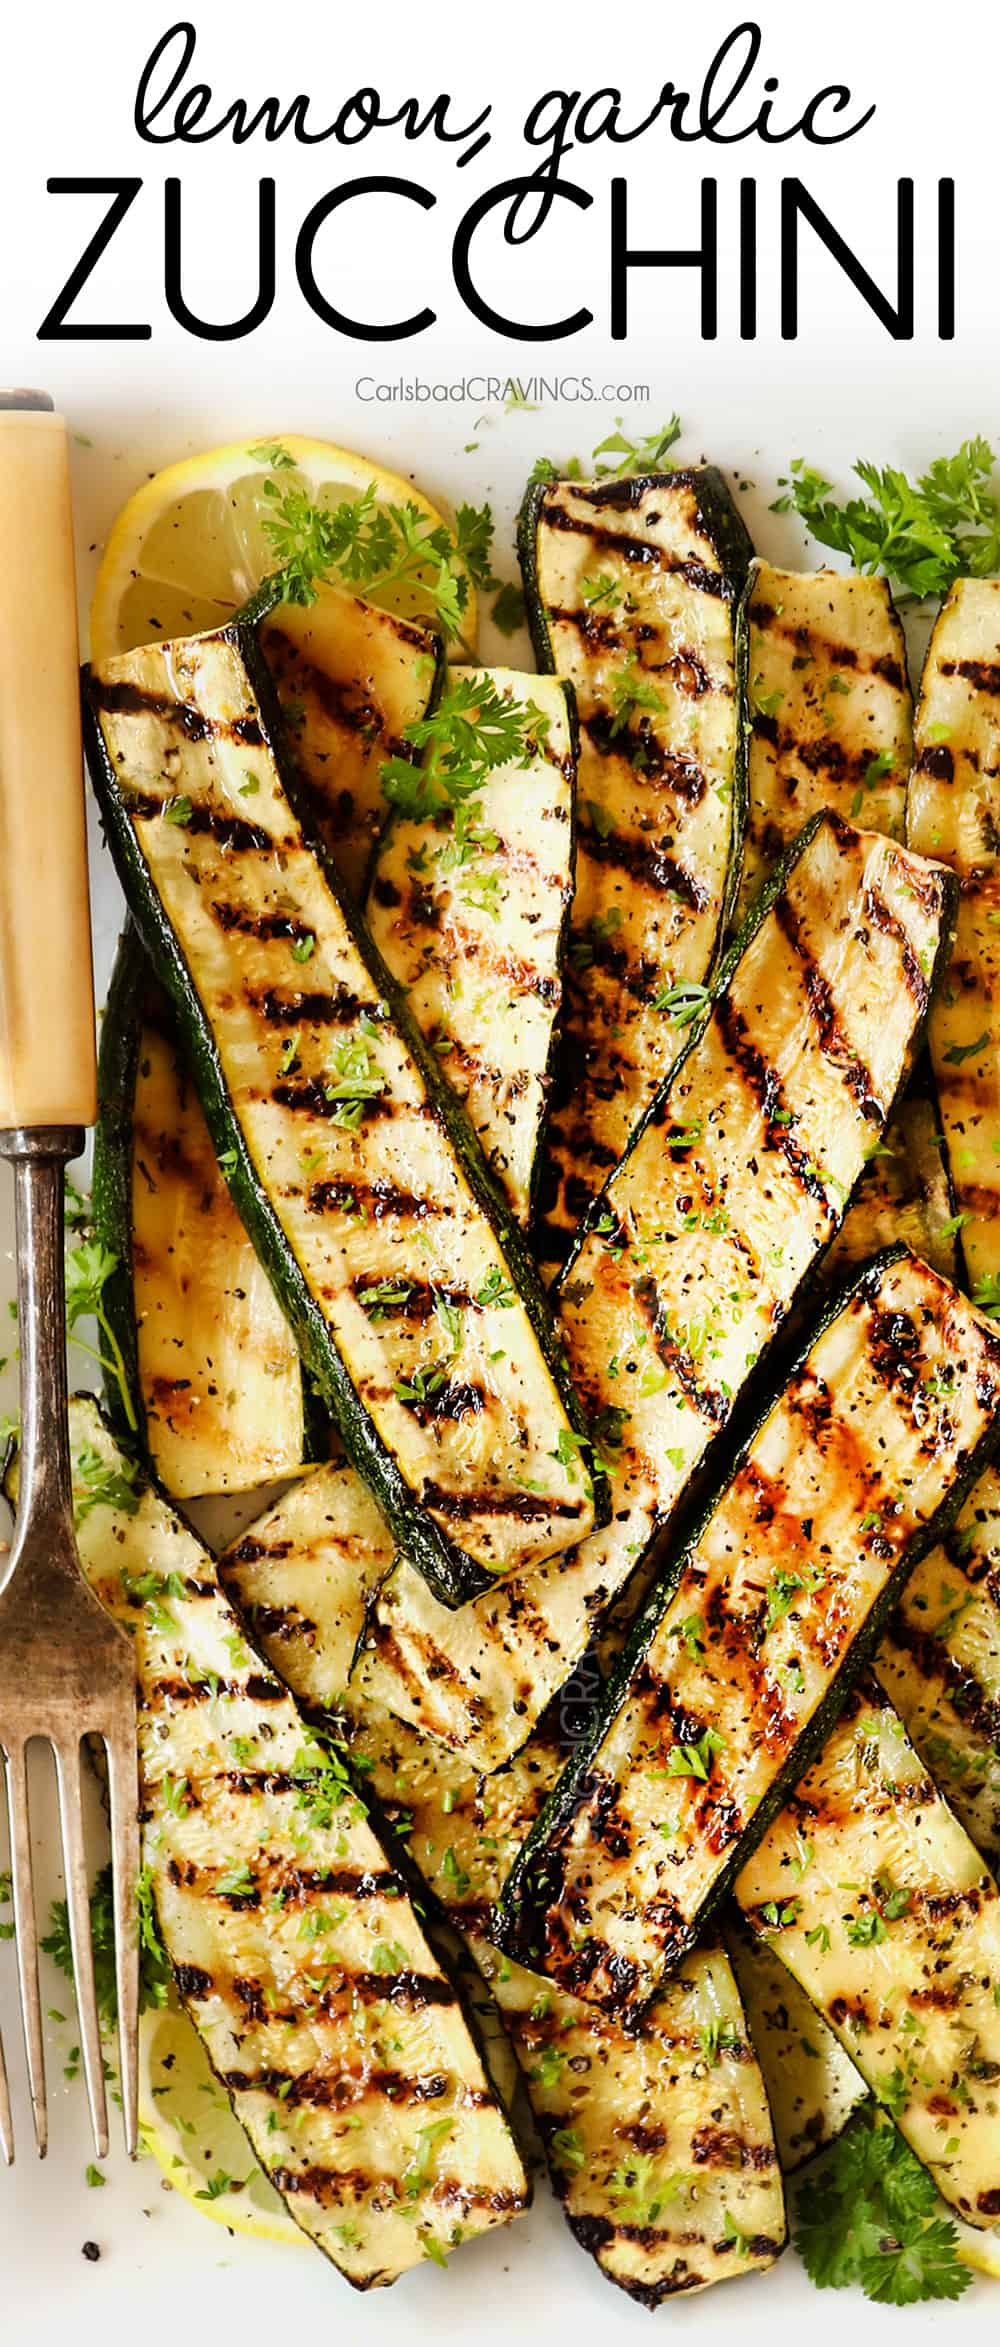 top view of grilled zucchini on a white platter